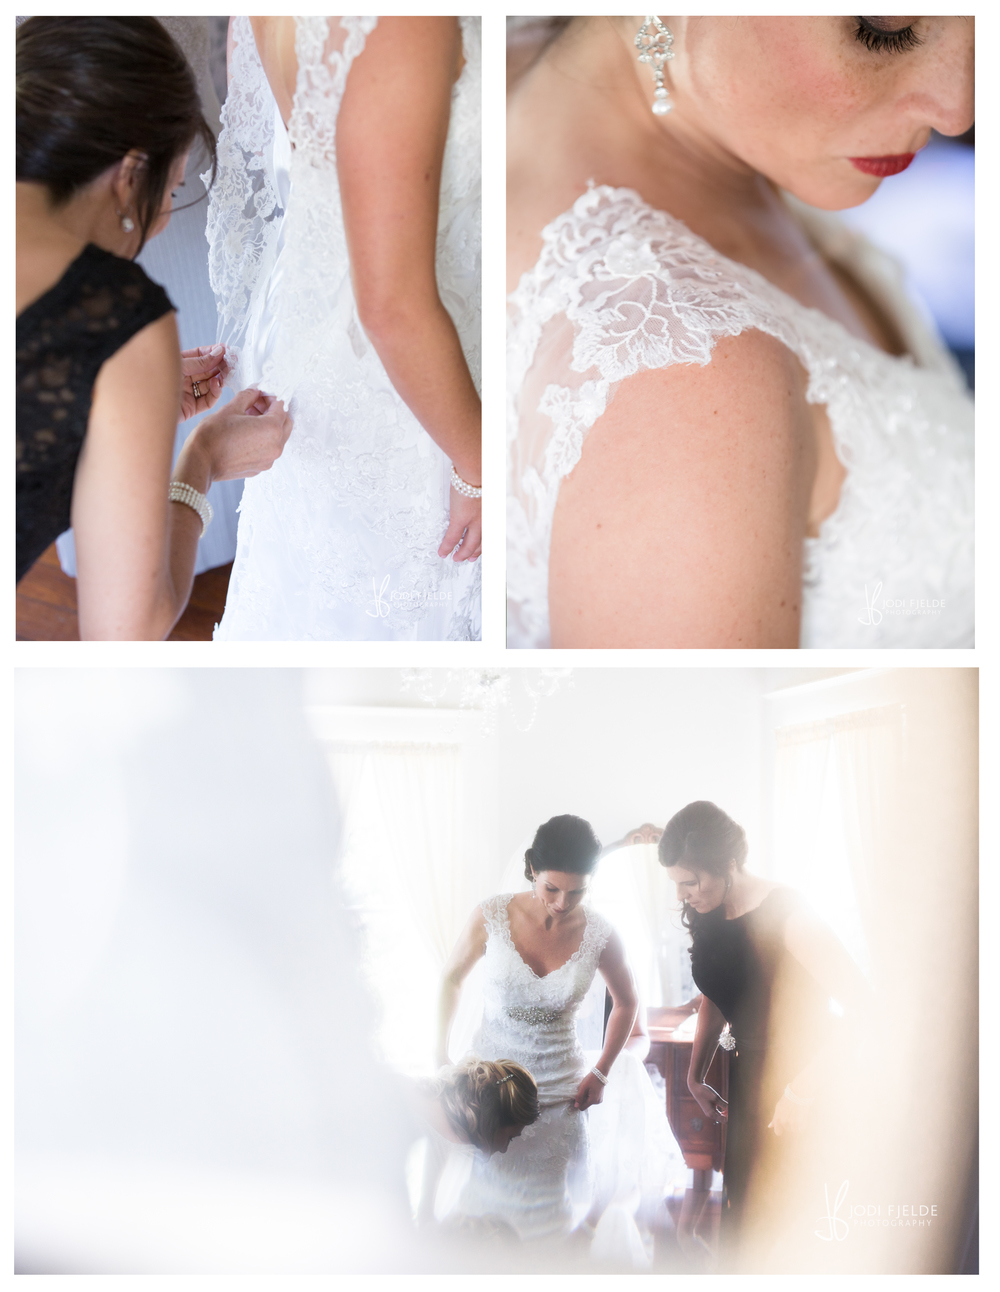 Highland_Manor_Apopka_Florida_wedding_Jackie_&_Tim_photography_jodi_Fjelde_photography-2.jpg